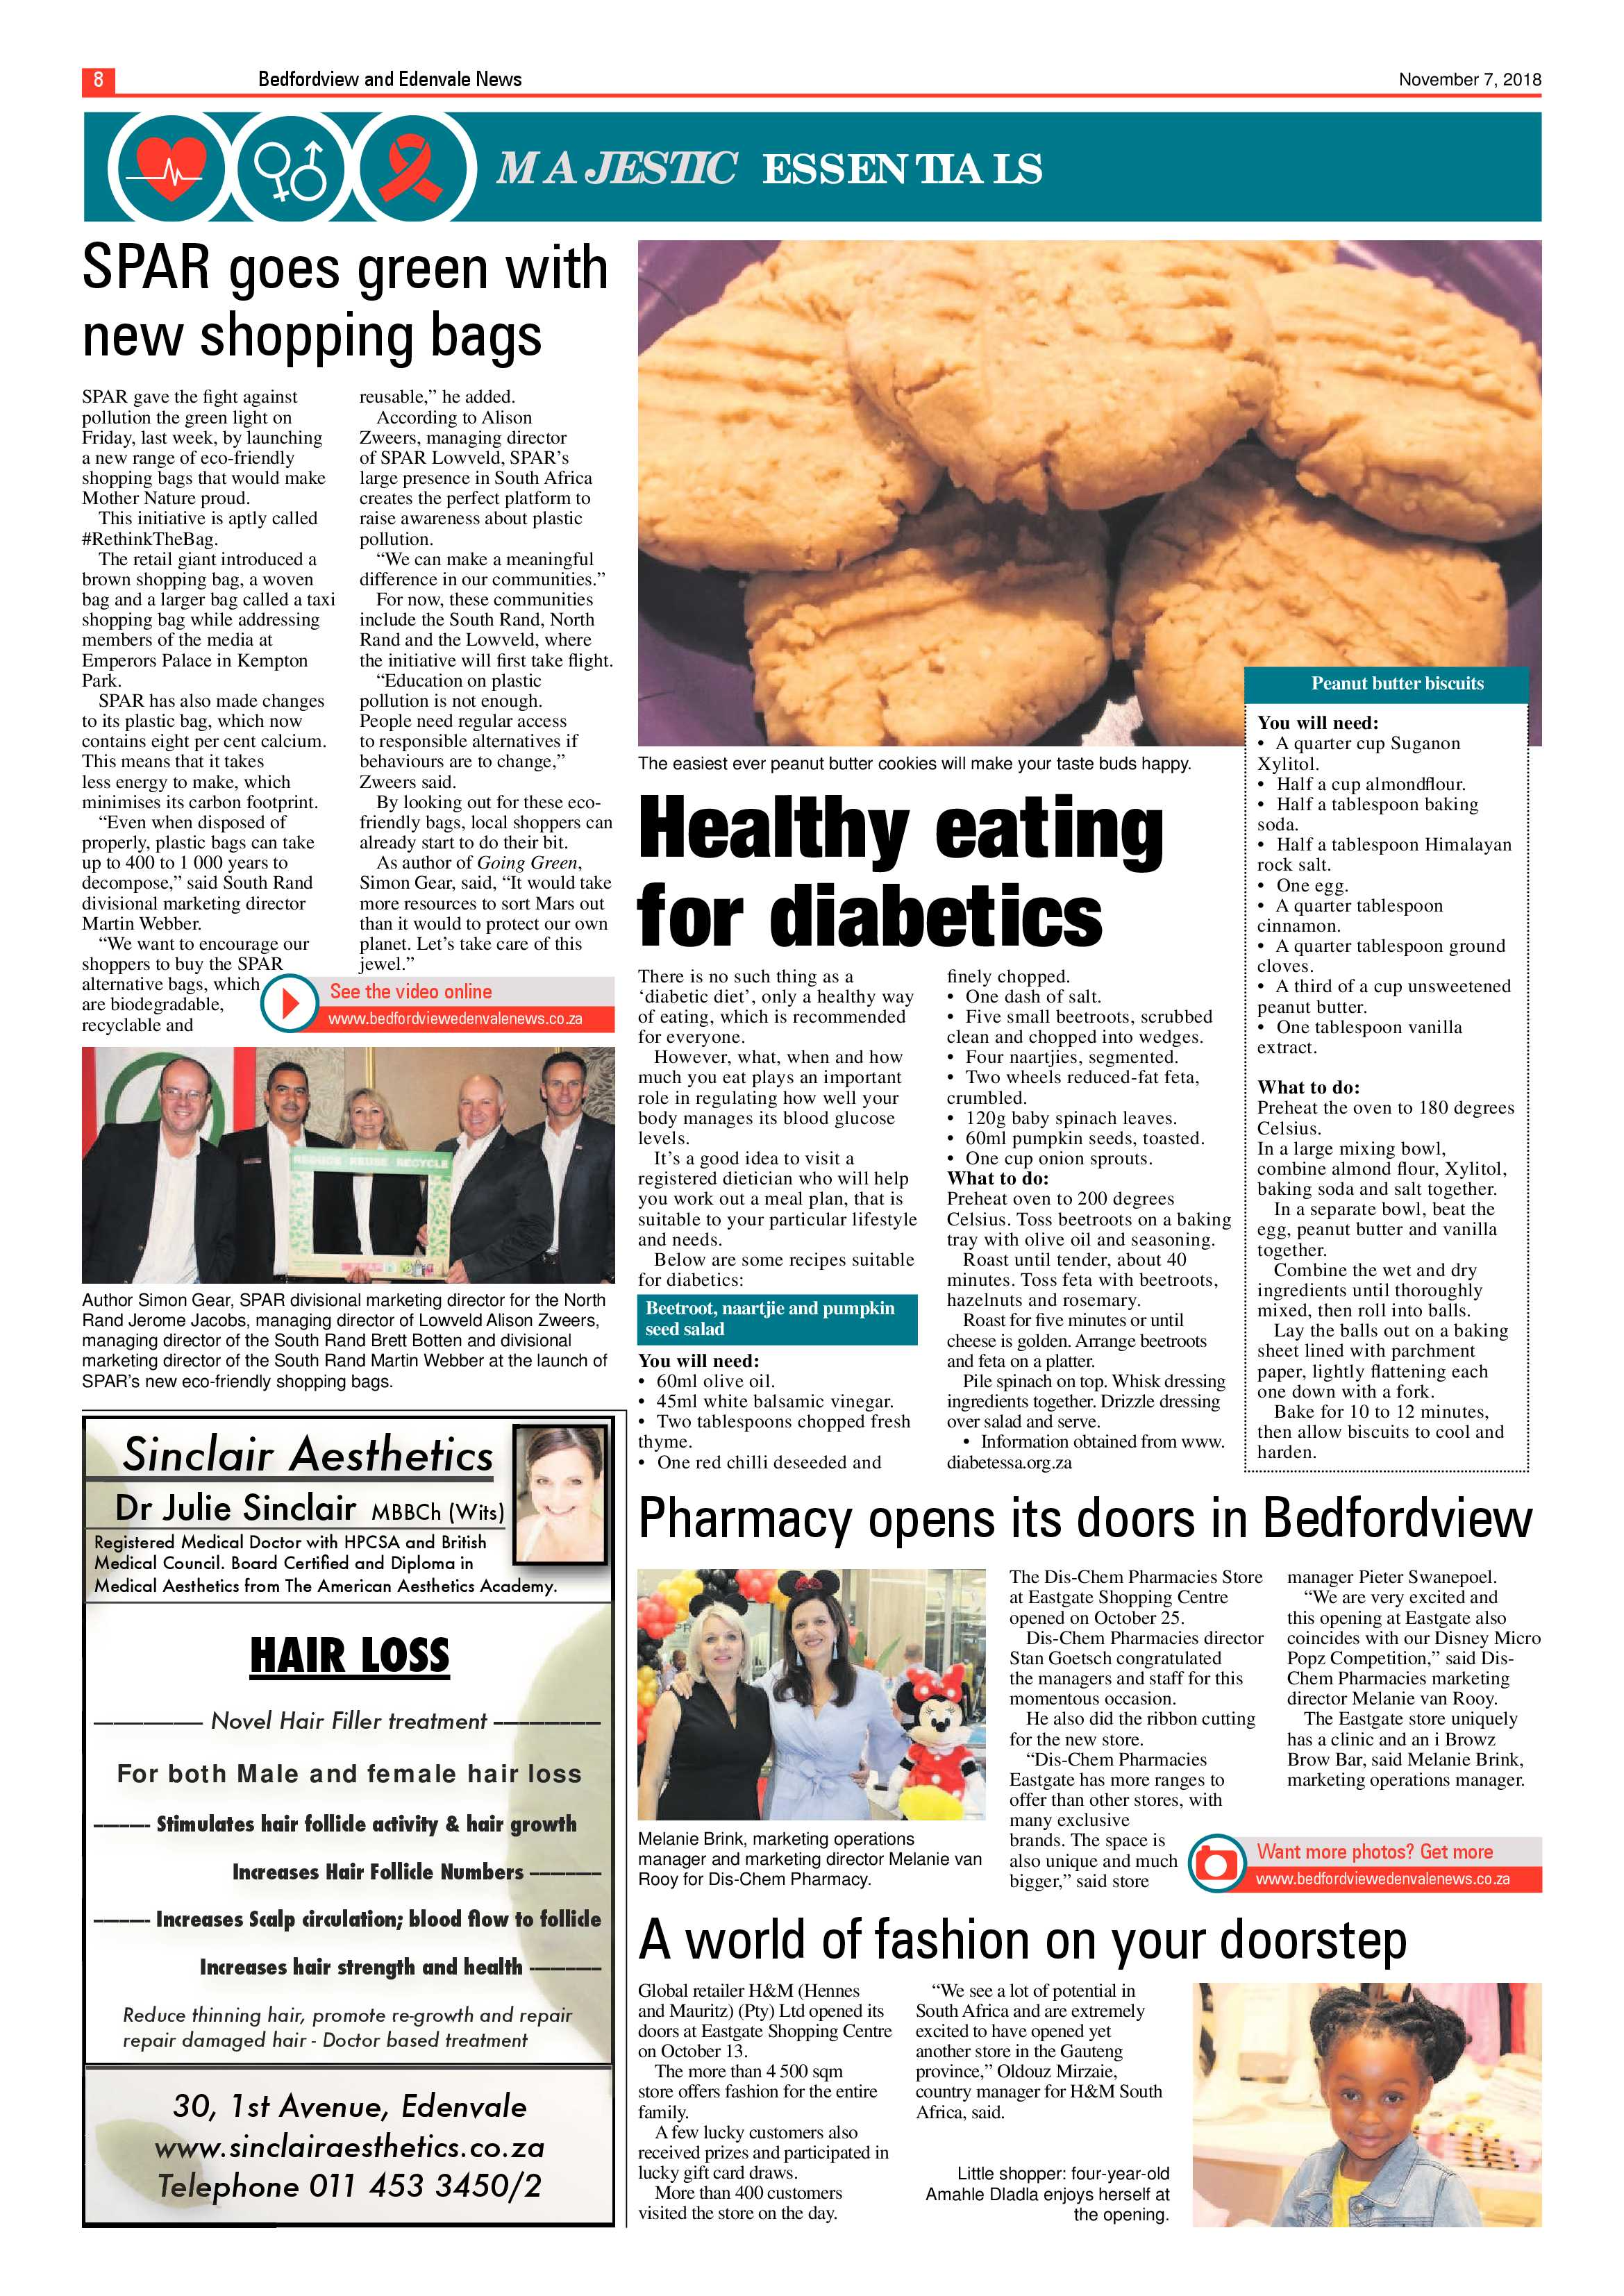 bedfordview-edenvale-news-07-november-2018-epapers-page-8